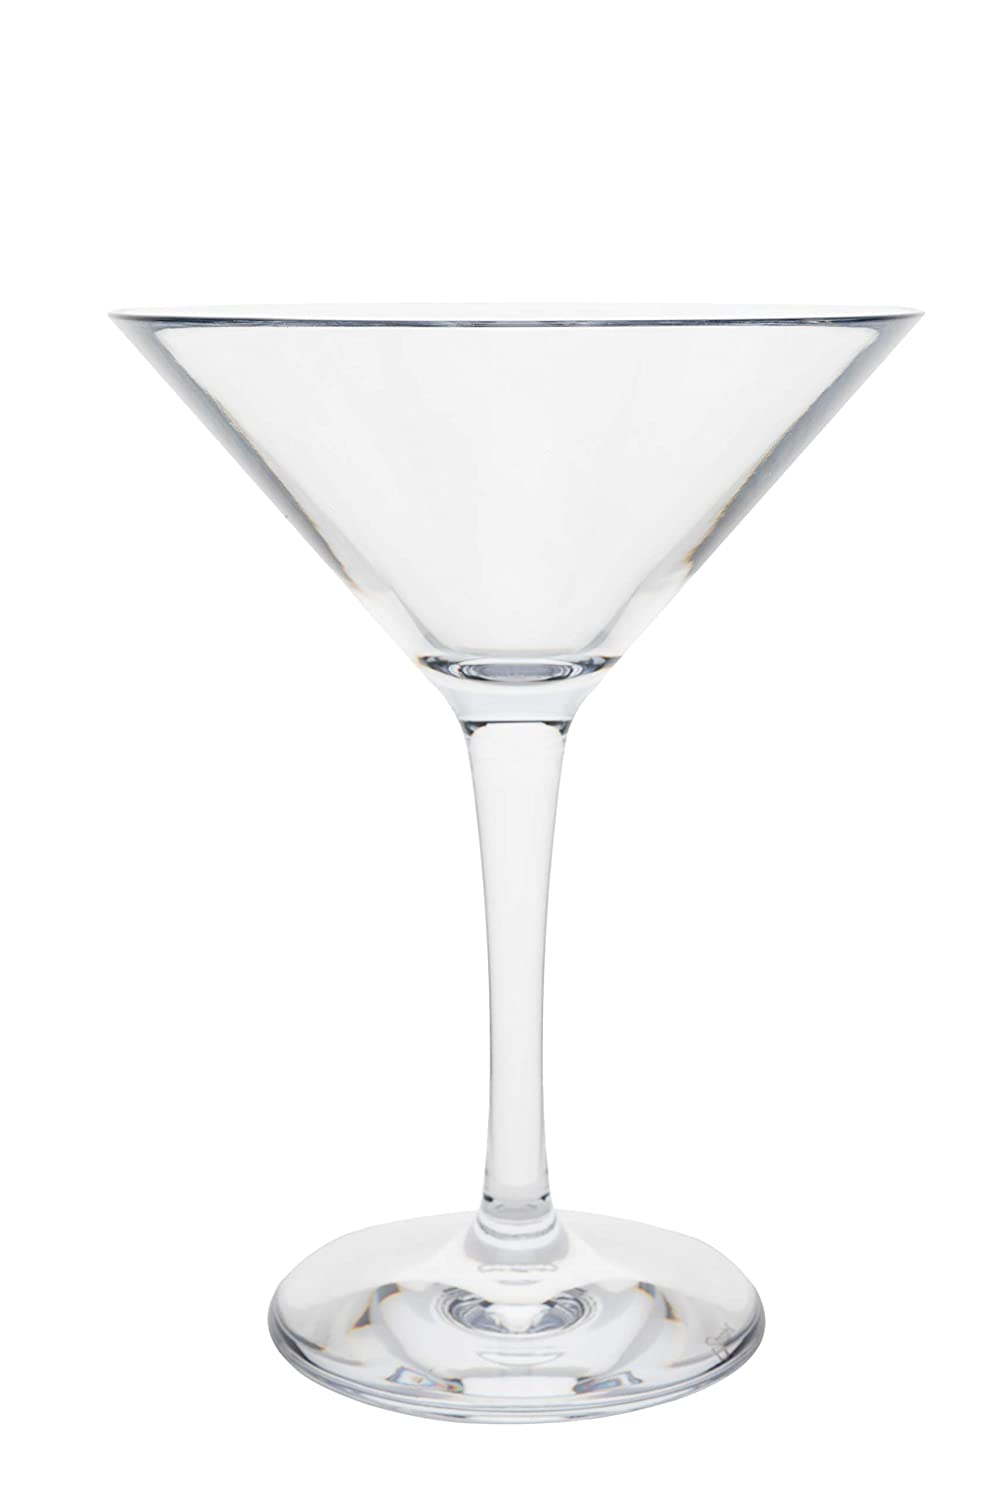 Strahl Martini Glass (Set of 4), 8 oz, Clear